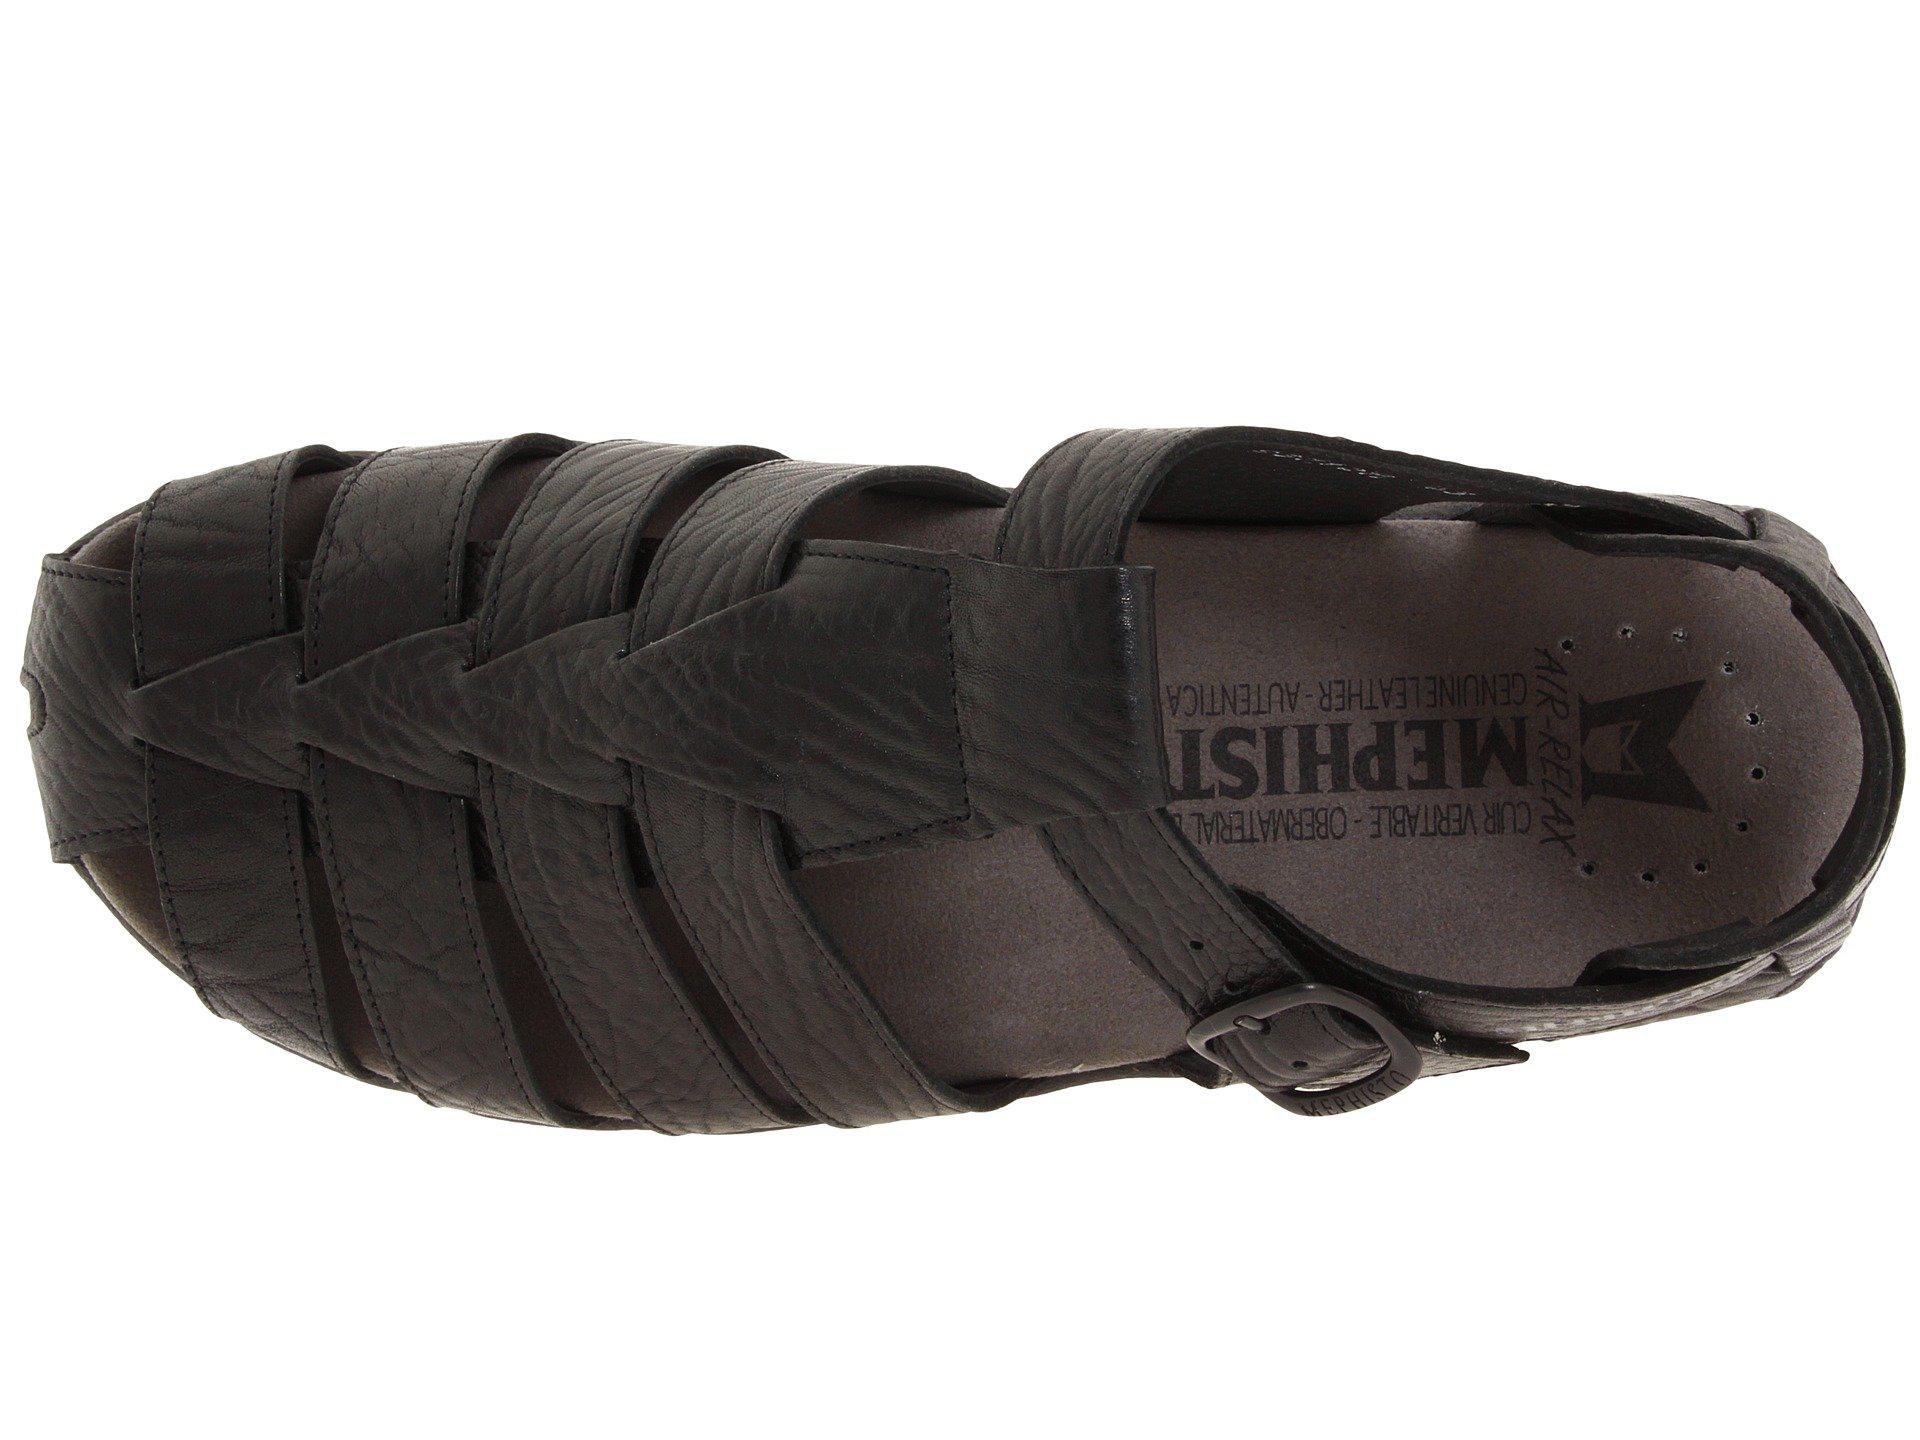 884a00dd939 Lyst - Mephisto Sam Sandal in Black for Men - Save 0.3460207612456685%